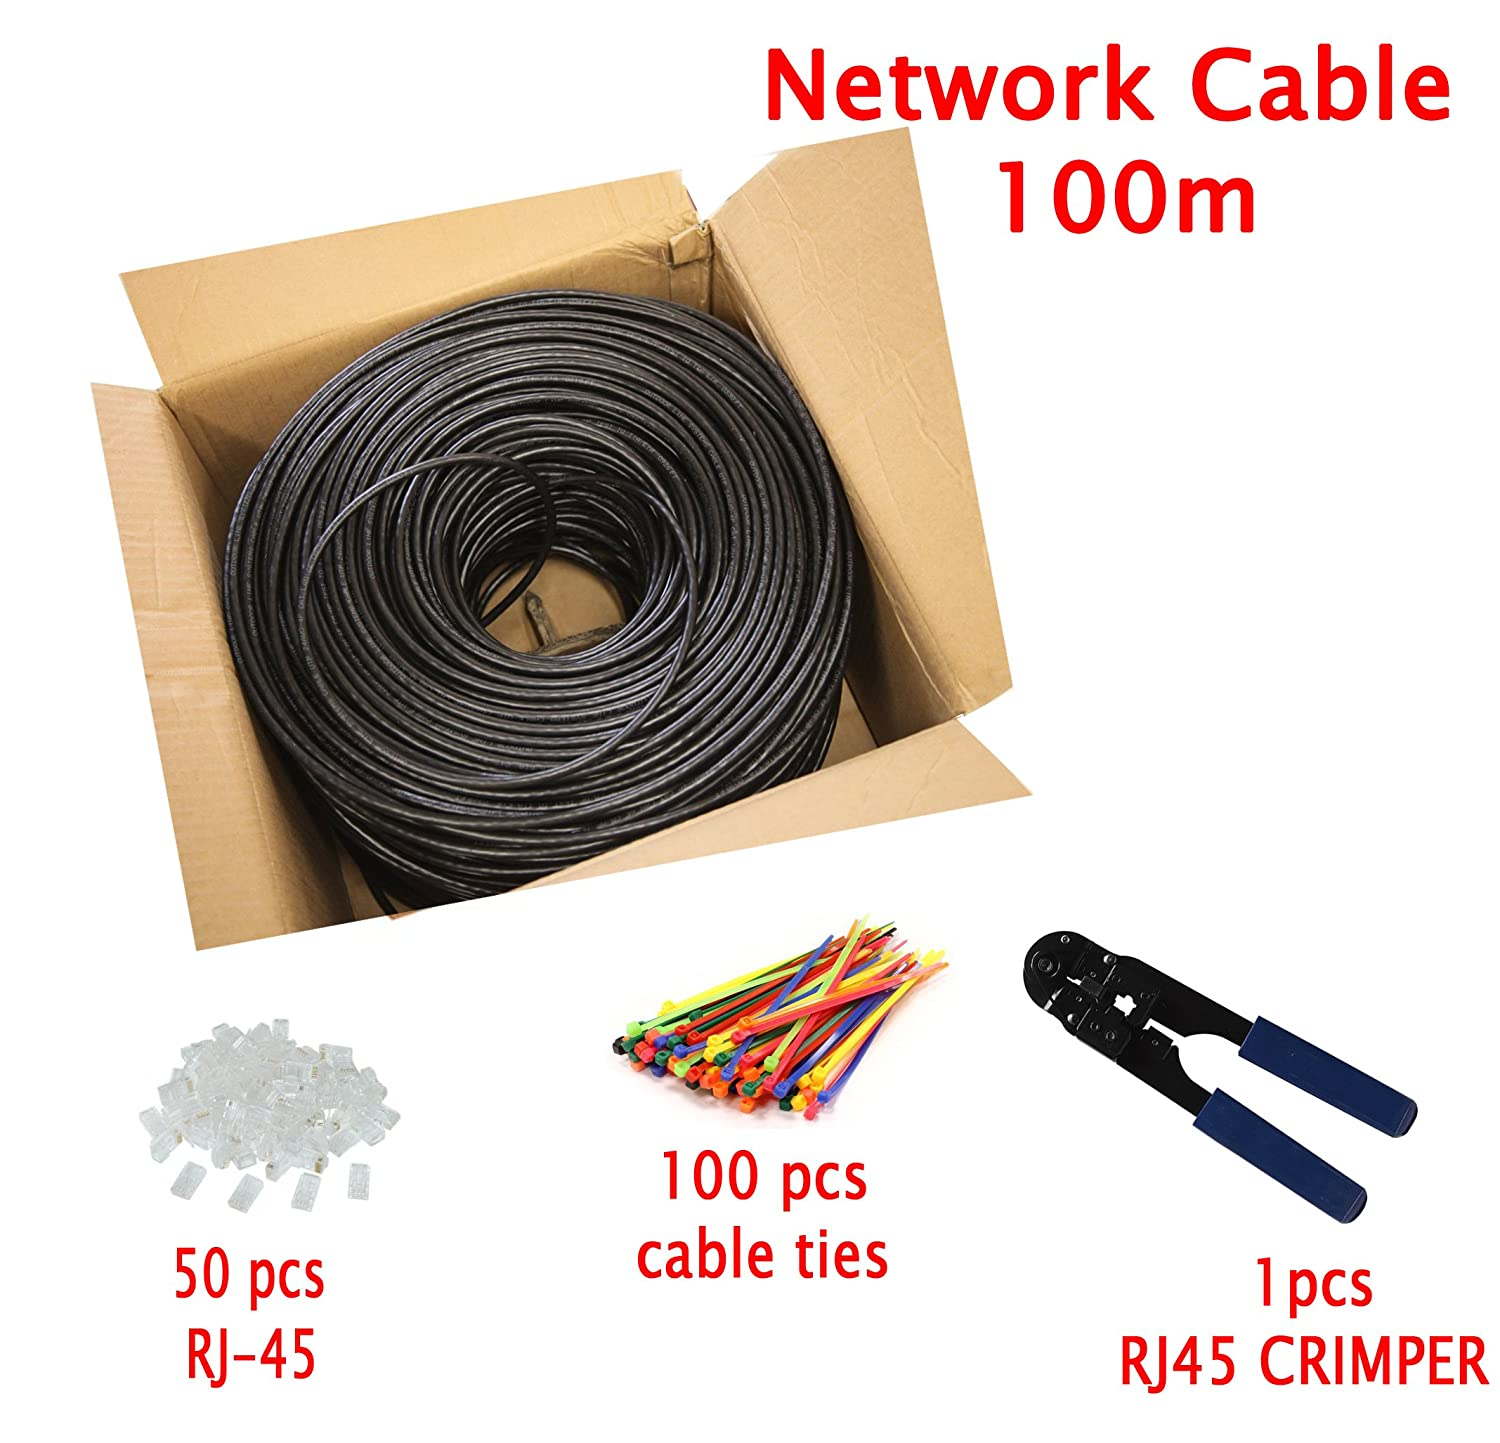 Multi-cable Networking 50m Cat5E outdoor Direct Burial Ethernet Cable with RJ-45 Plug - FTP - CCA - Black - 50 meter MutecPower cat5ou1pk5